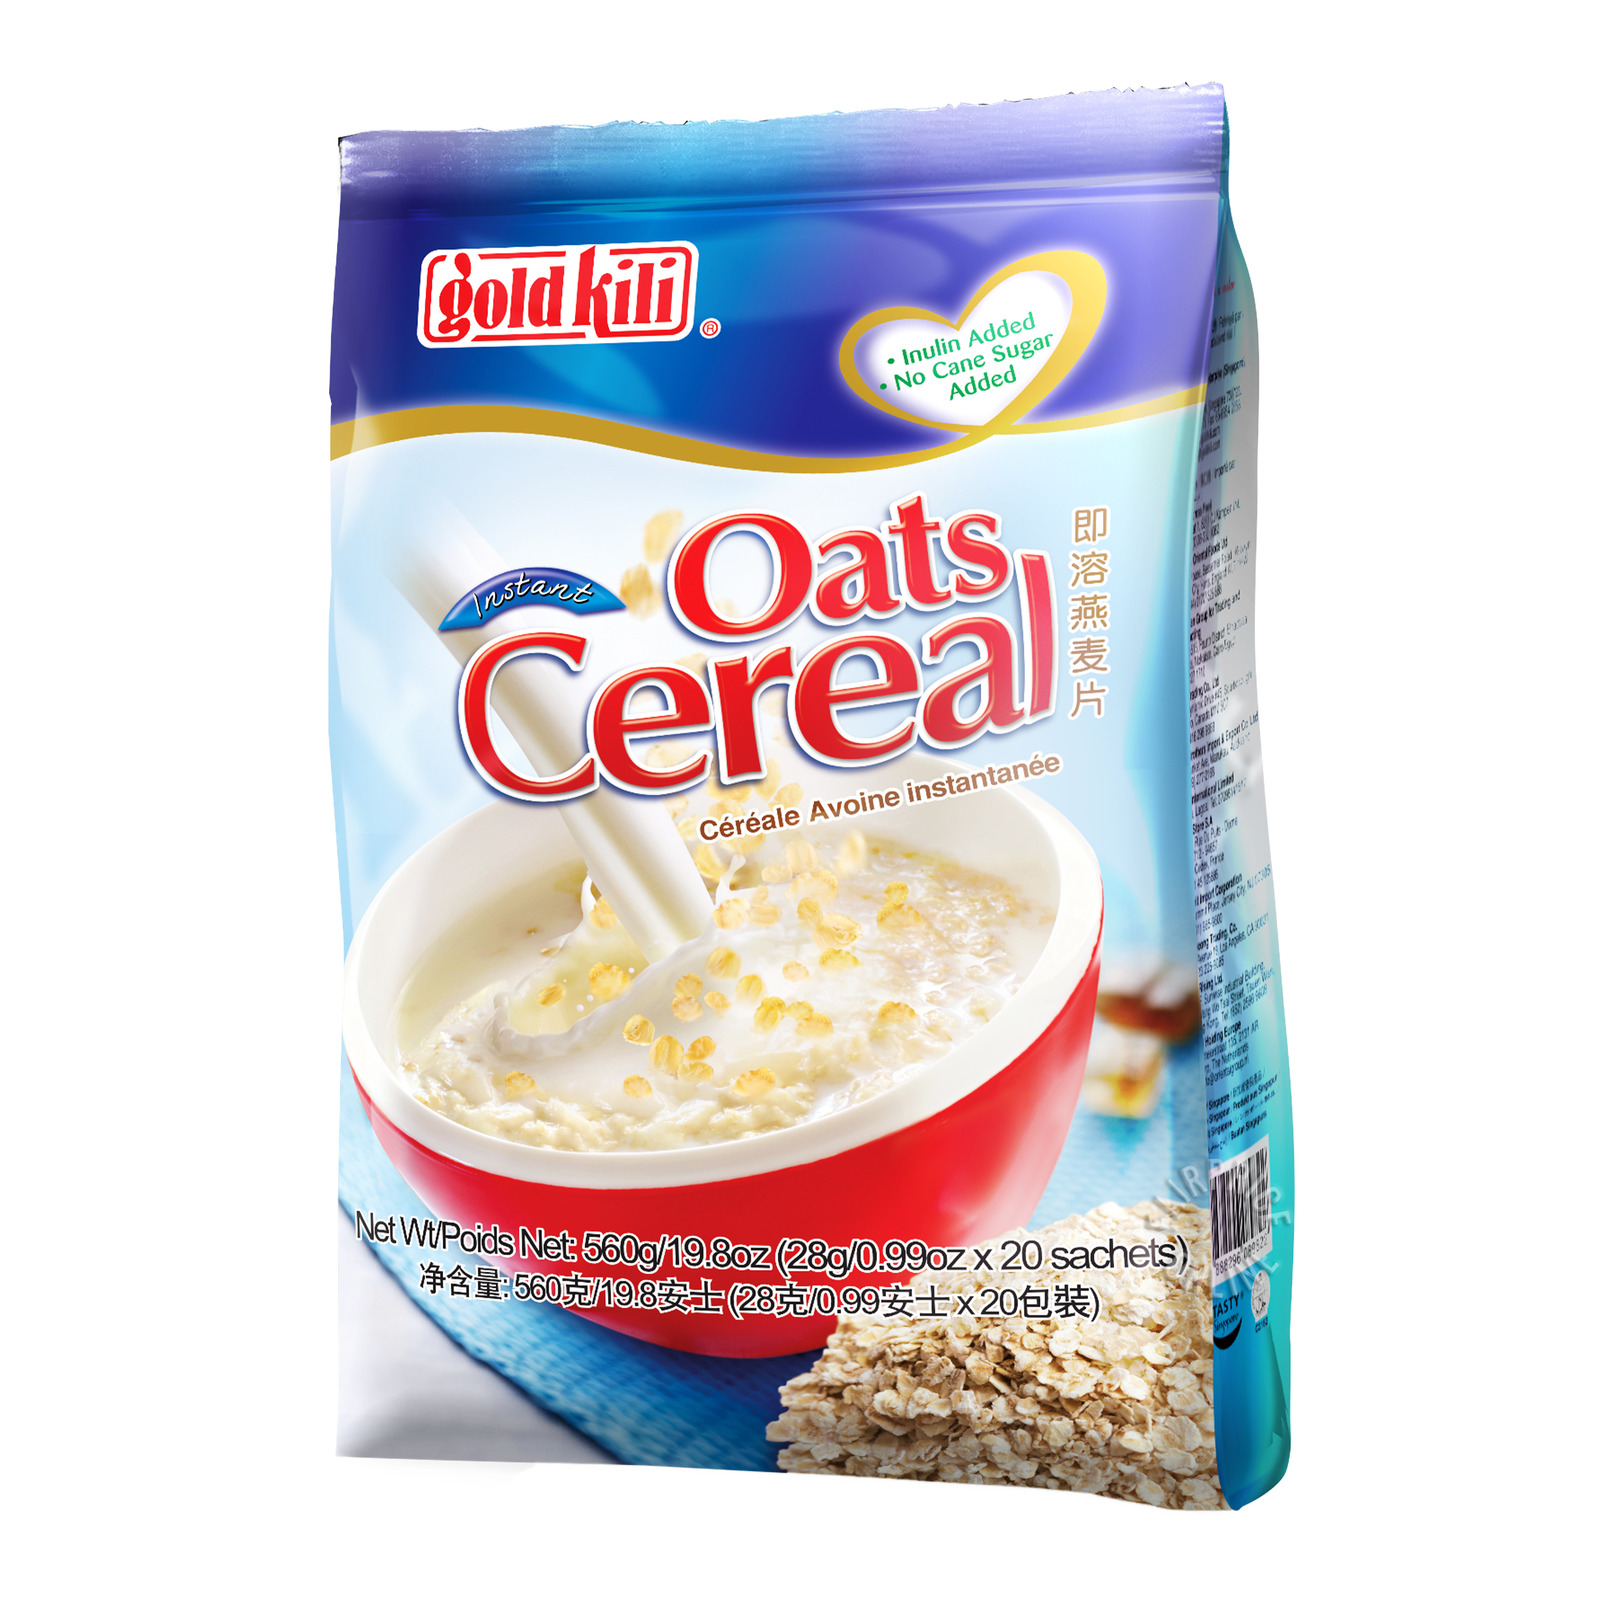 Gold Kili Instant Oats Cereal